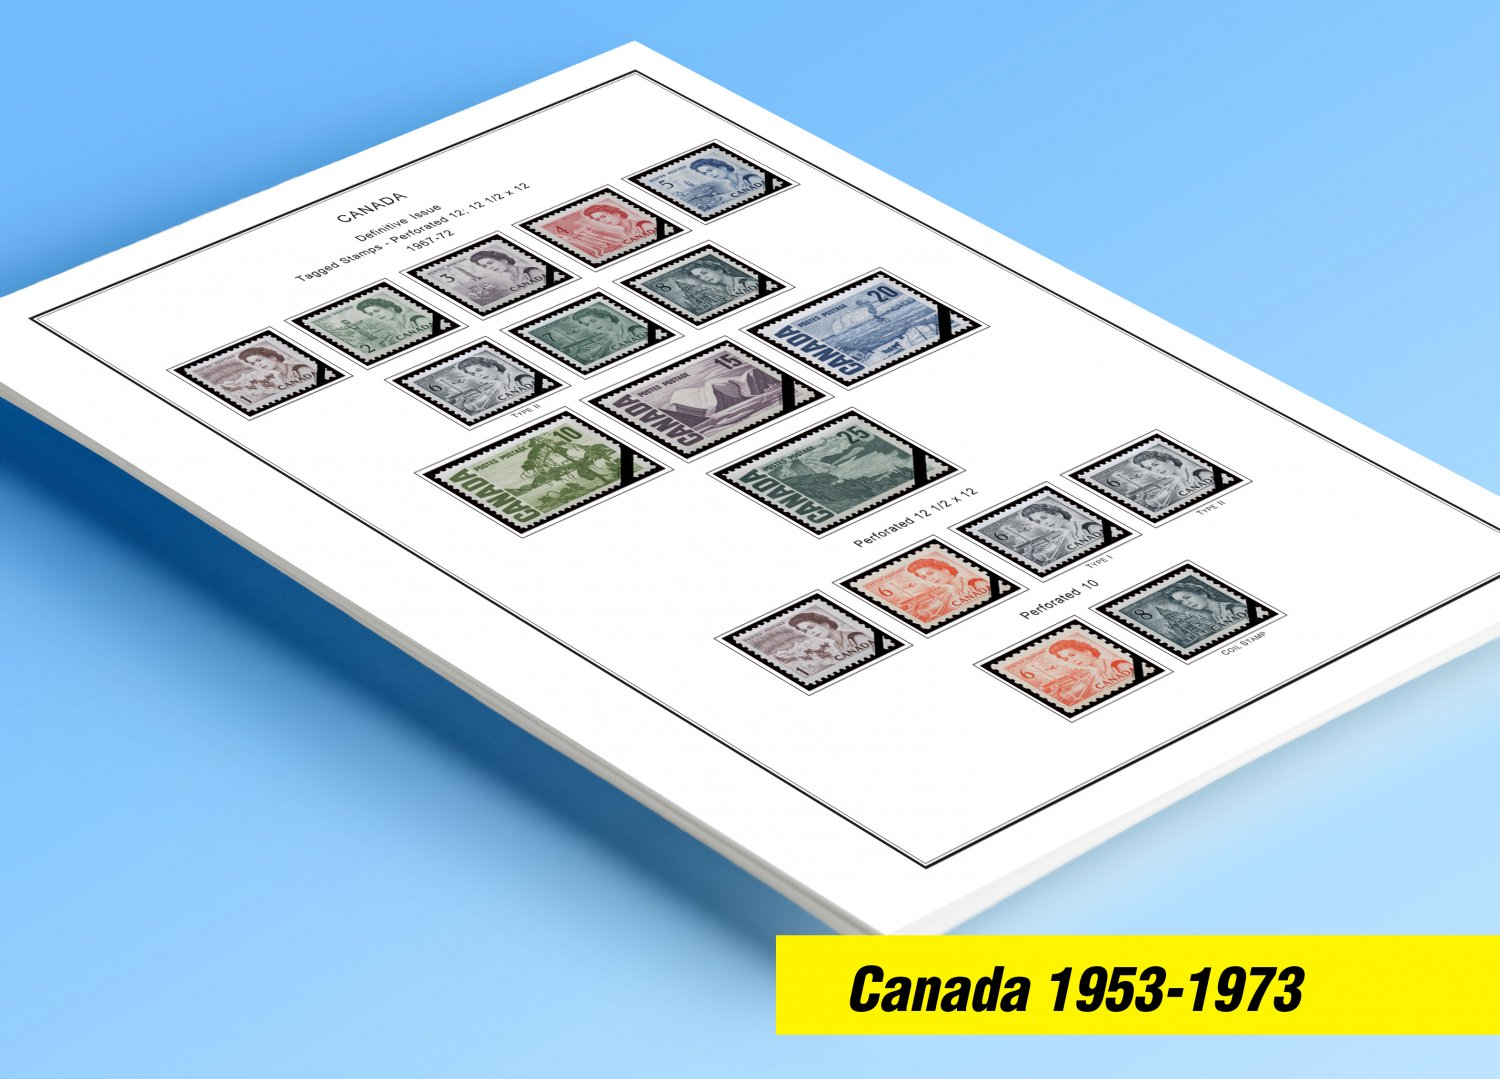 COLOR PRINTED CANADA 1953-1973 STAMP ALBUM PAGES (32 illustrated pages)